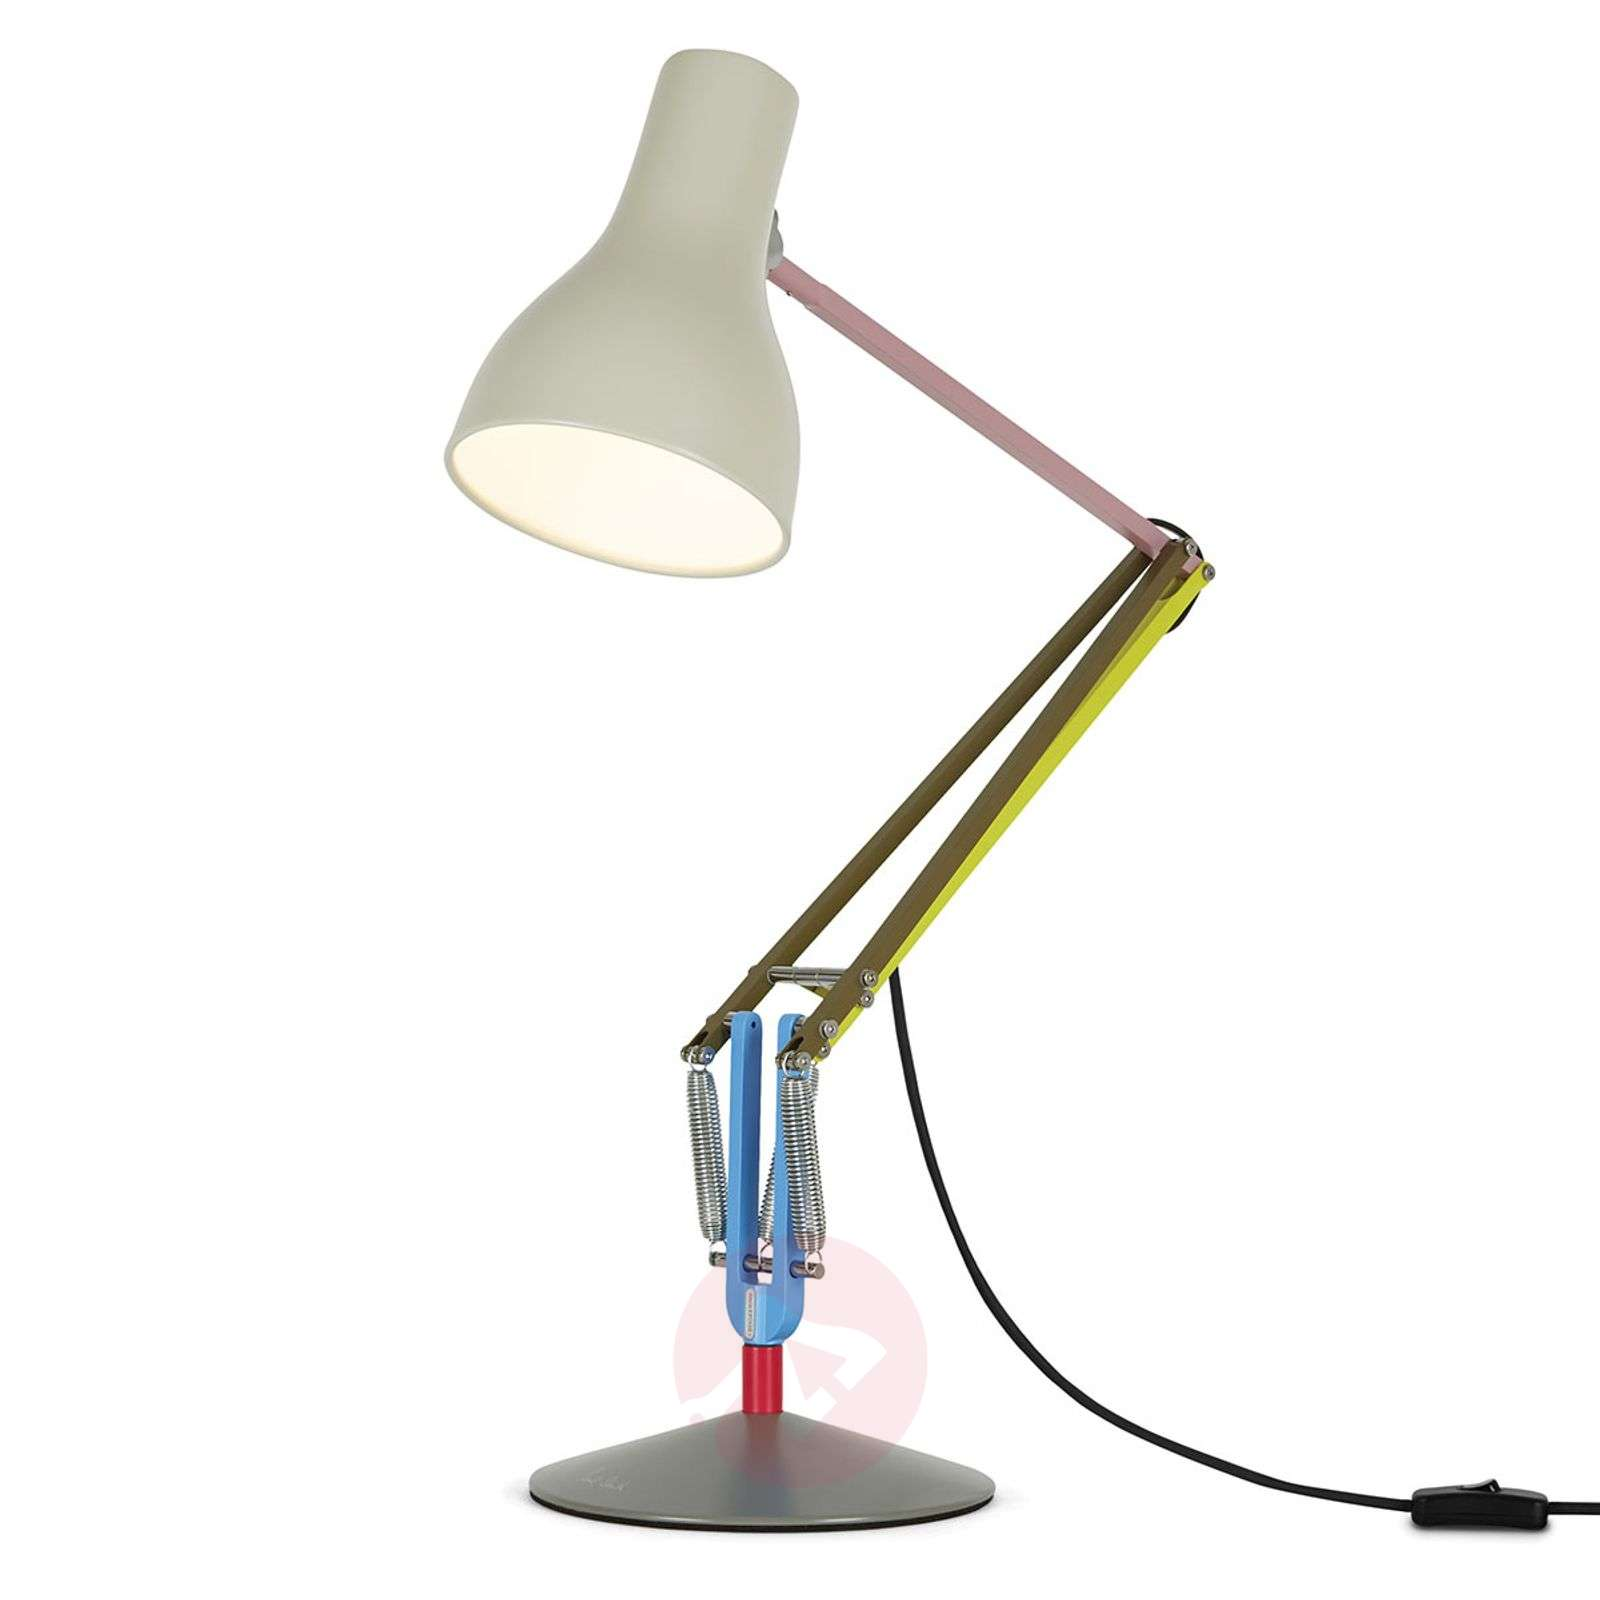 Anglepoise®Type 75 table lamp Paul Smith-1073018X-01